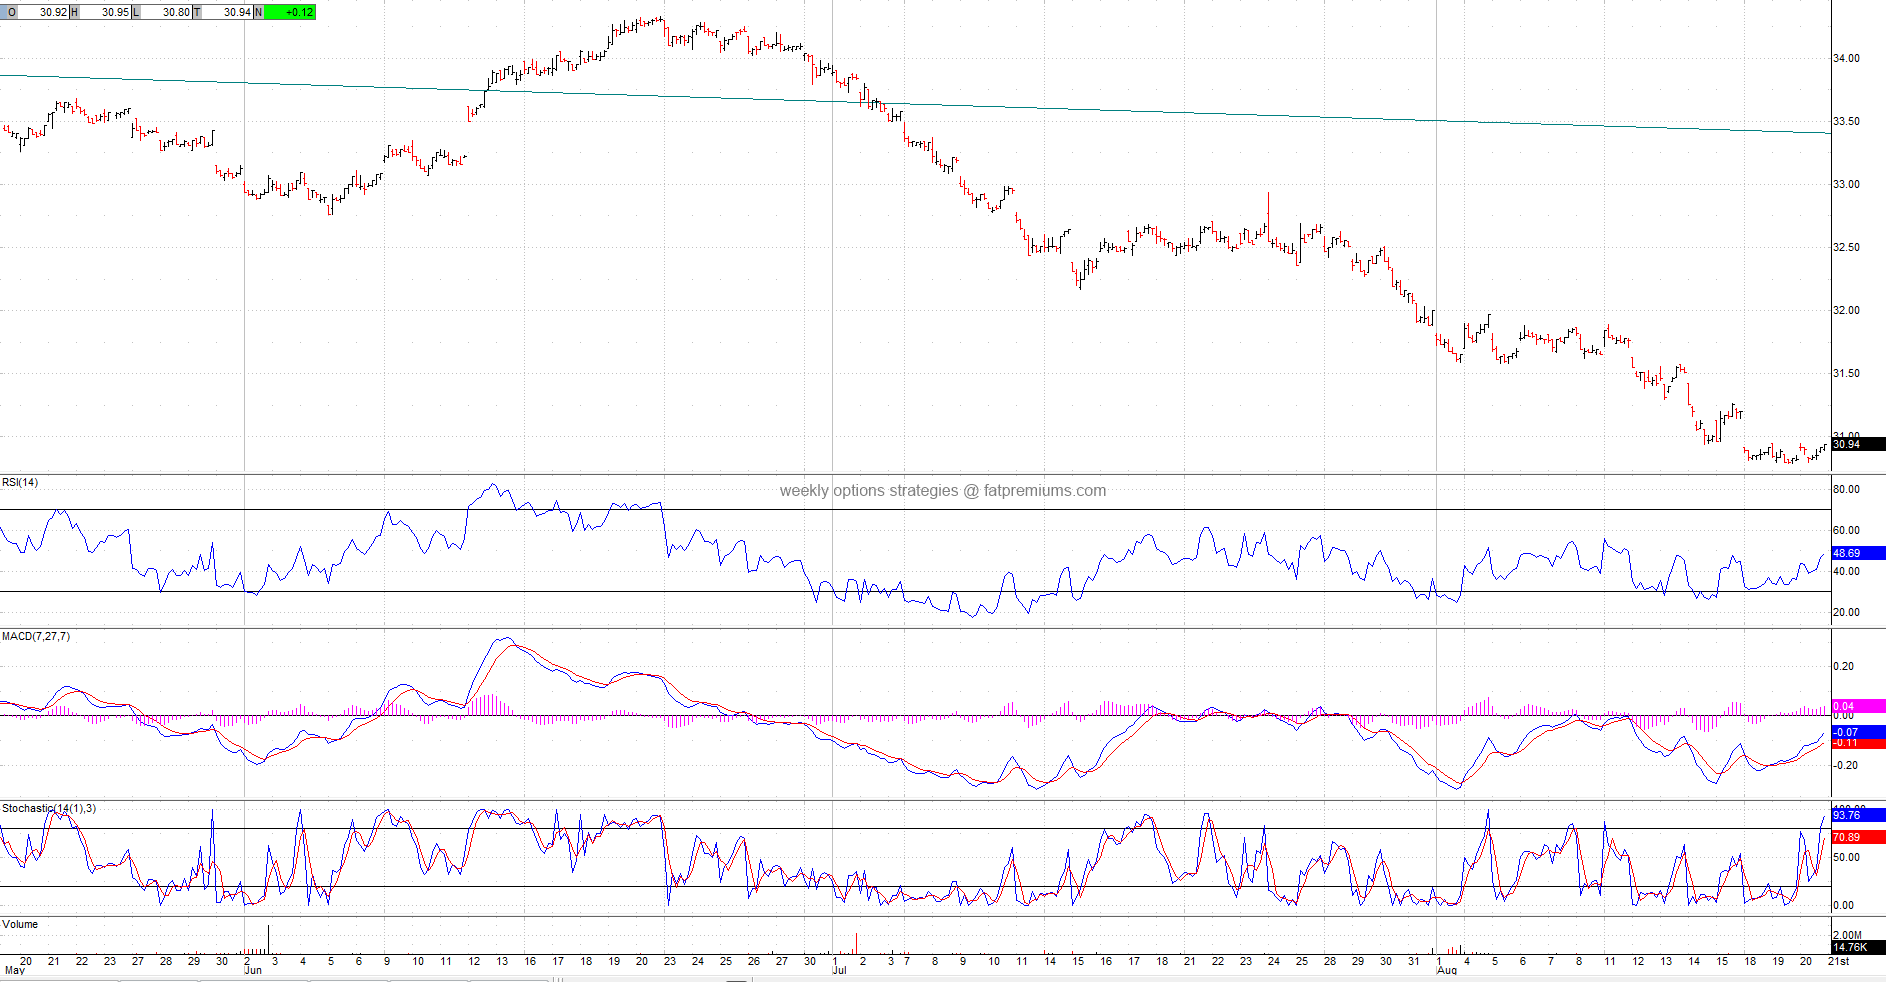 S&P GSCI Commodity-Indexed Trust iShares (NYSEARCA:GSG) Hourly Chart (2014-08-20) Neutral